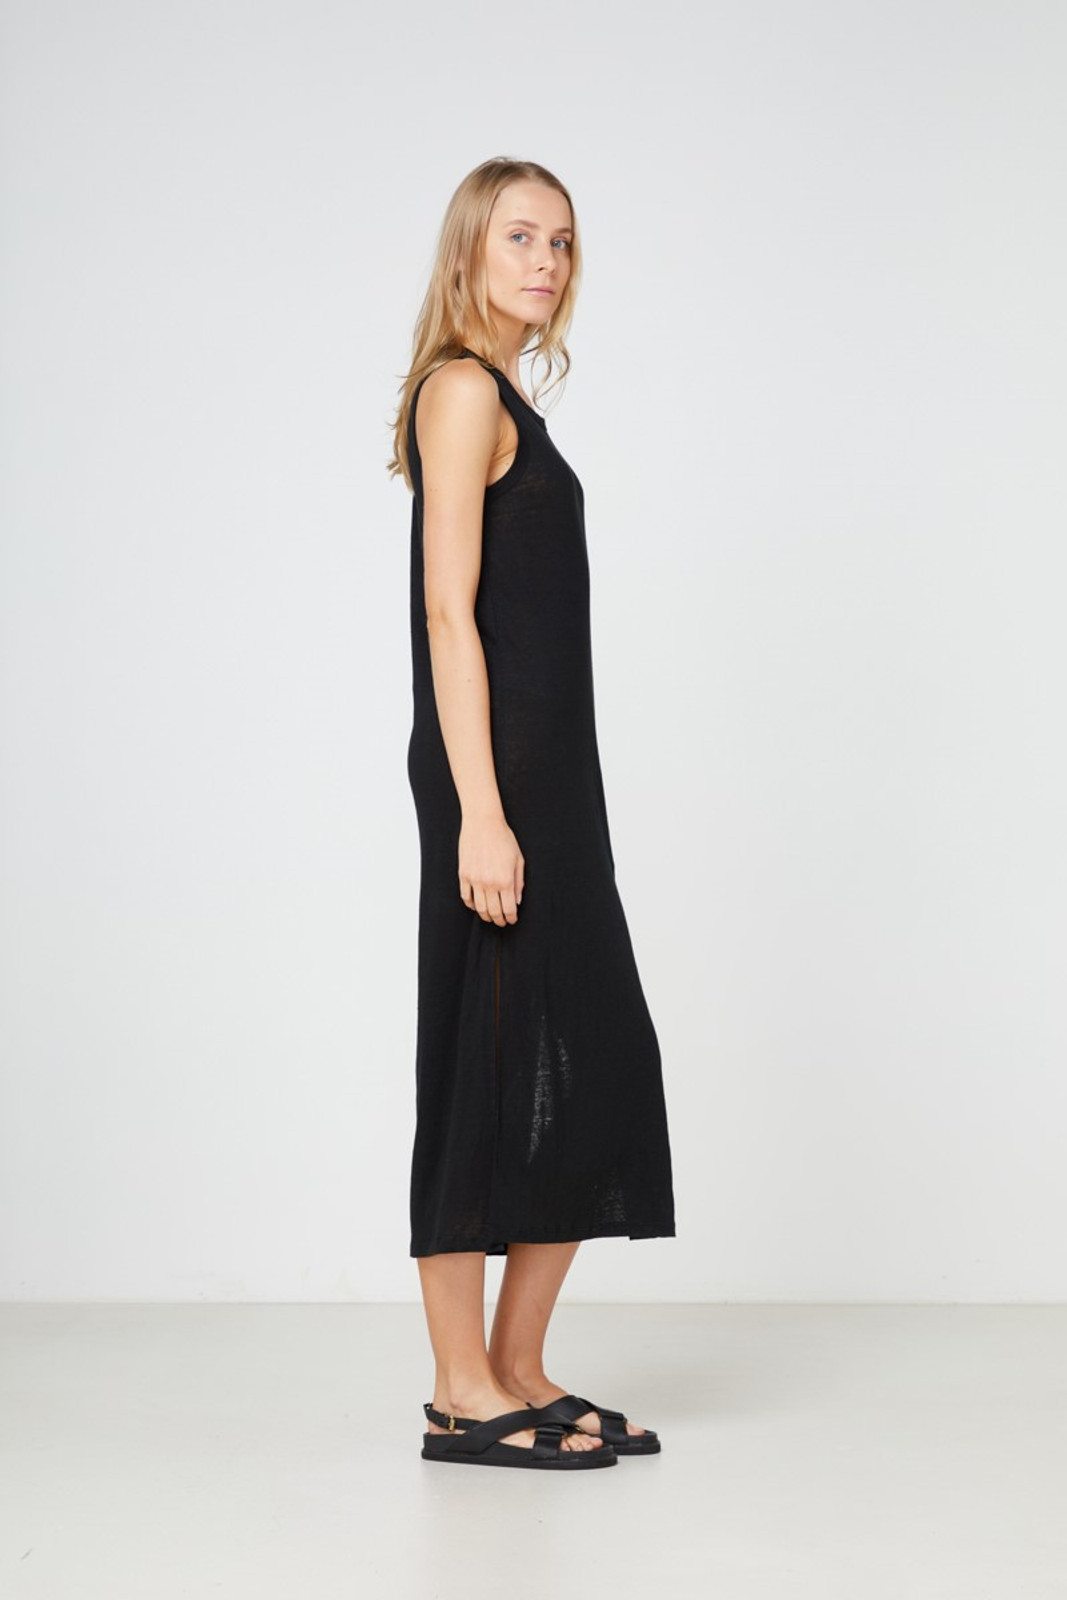 Elka Collective EC Linen Tank Dress 2.0 Black  4